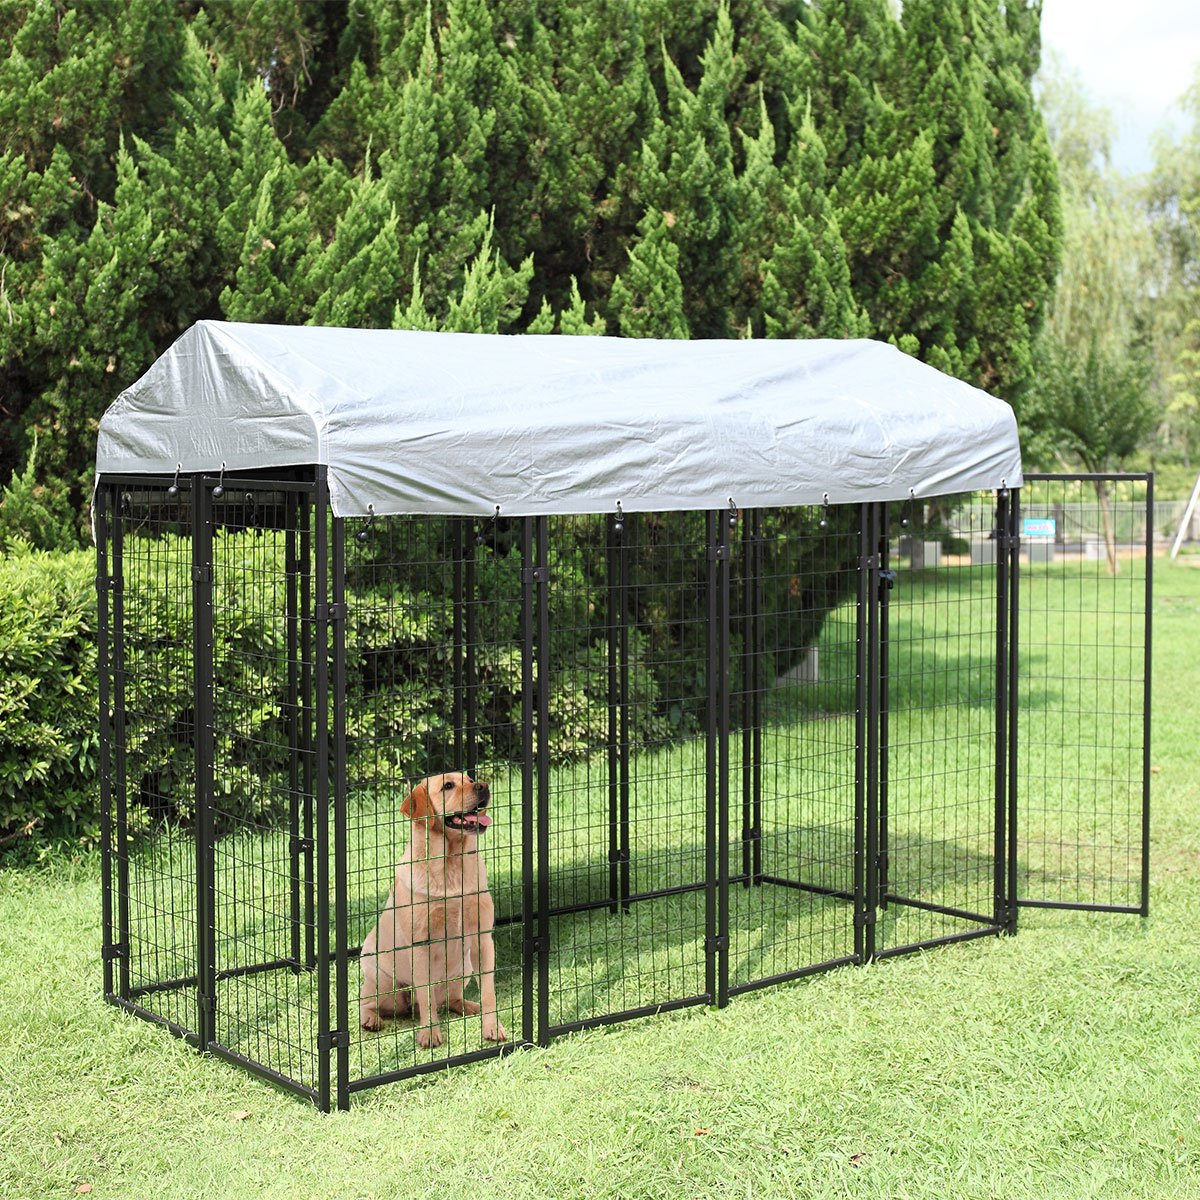 JAXPETY Large Dog Uptown Welded Wire Kennel Outdoor Pen Outside Exercise Crate Pet Wire Cage w/Roof by JAXPETY